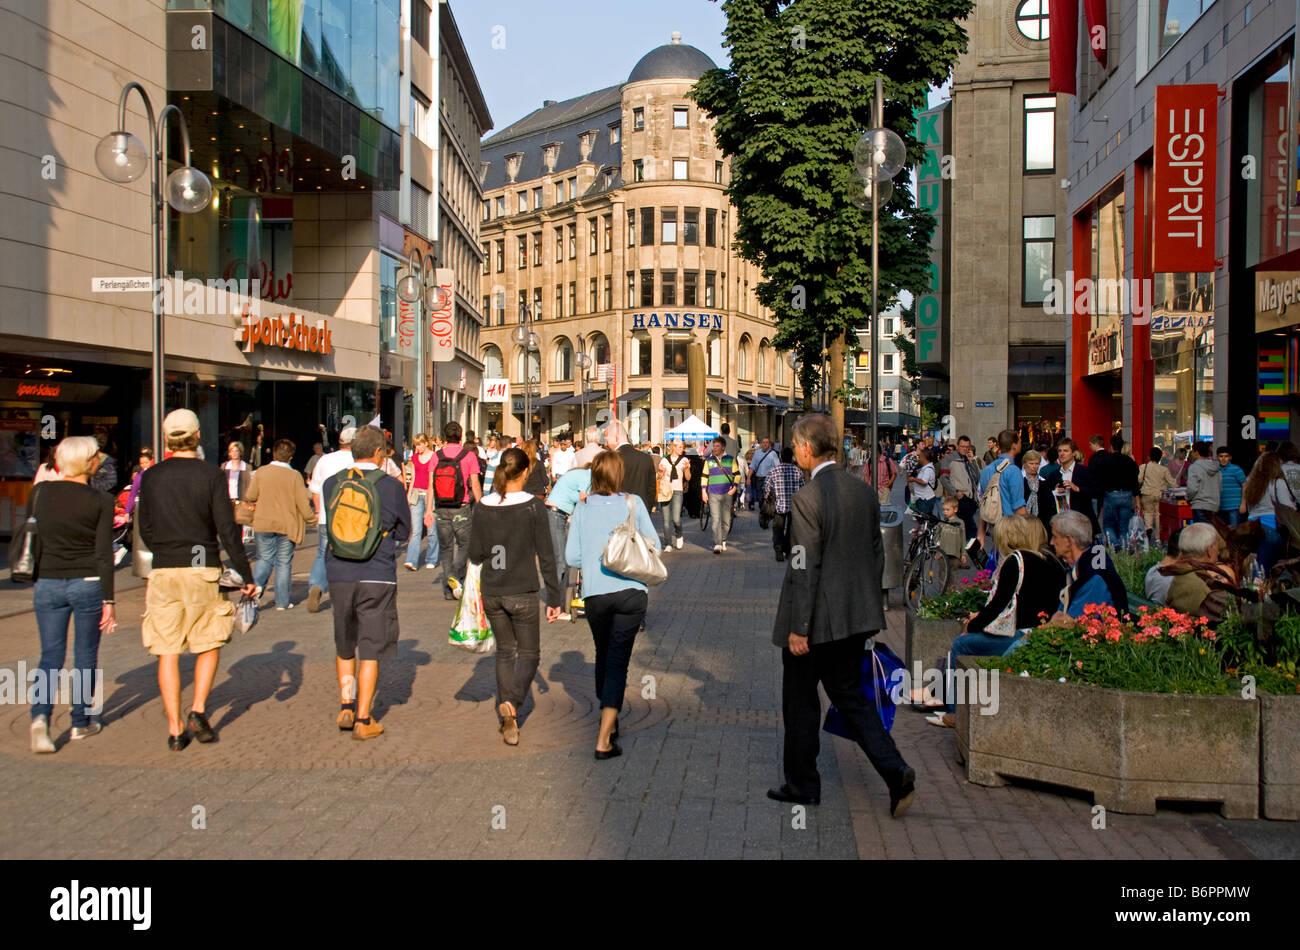 Cologne pedestrian shopping street in downtown central city - Stock Image